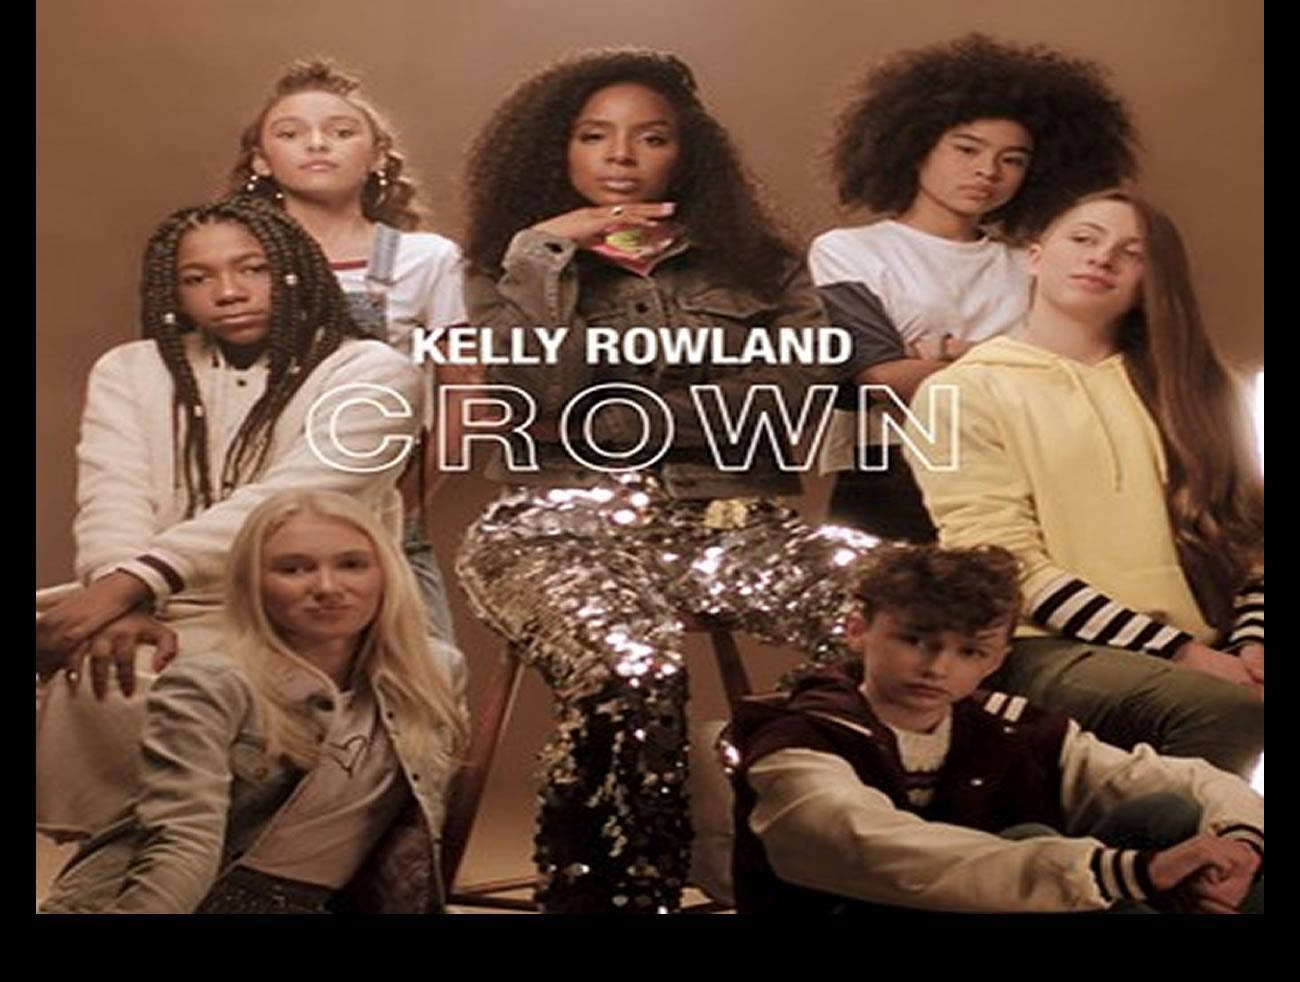 DOVE E KELLY ROWLAND LANÇAM O SINGLE 'CROWN'